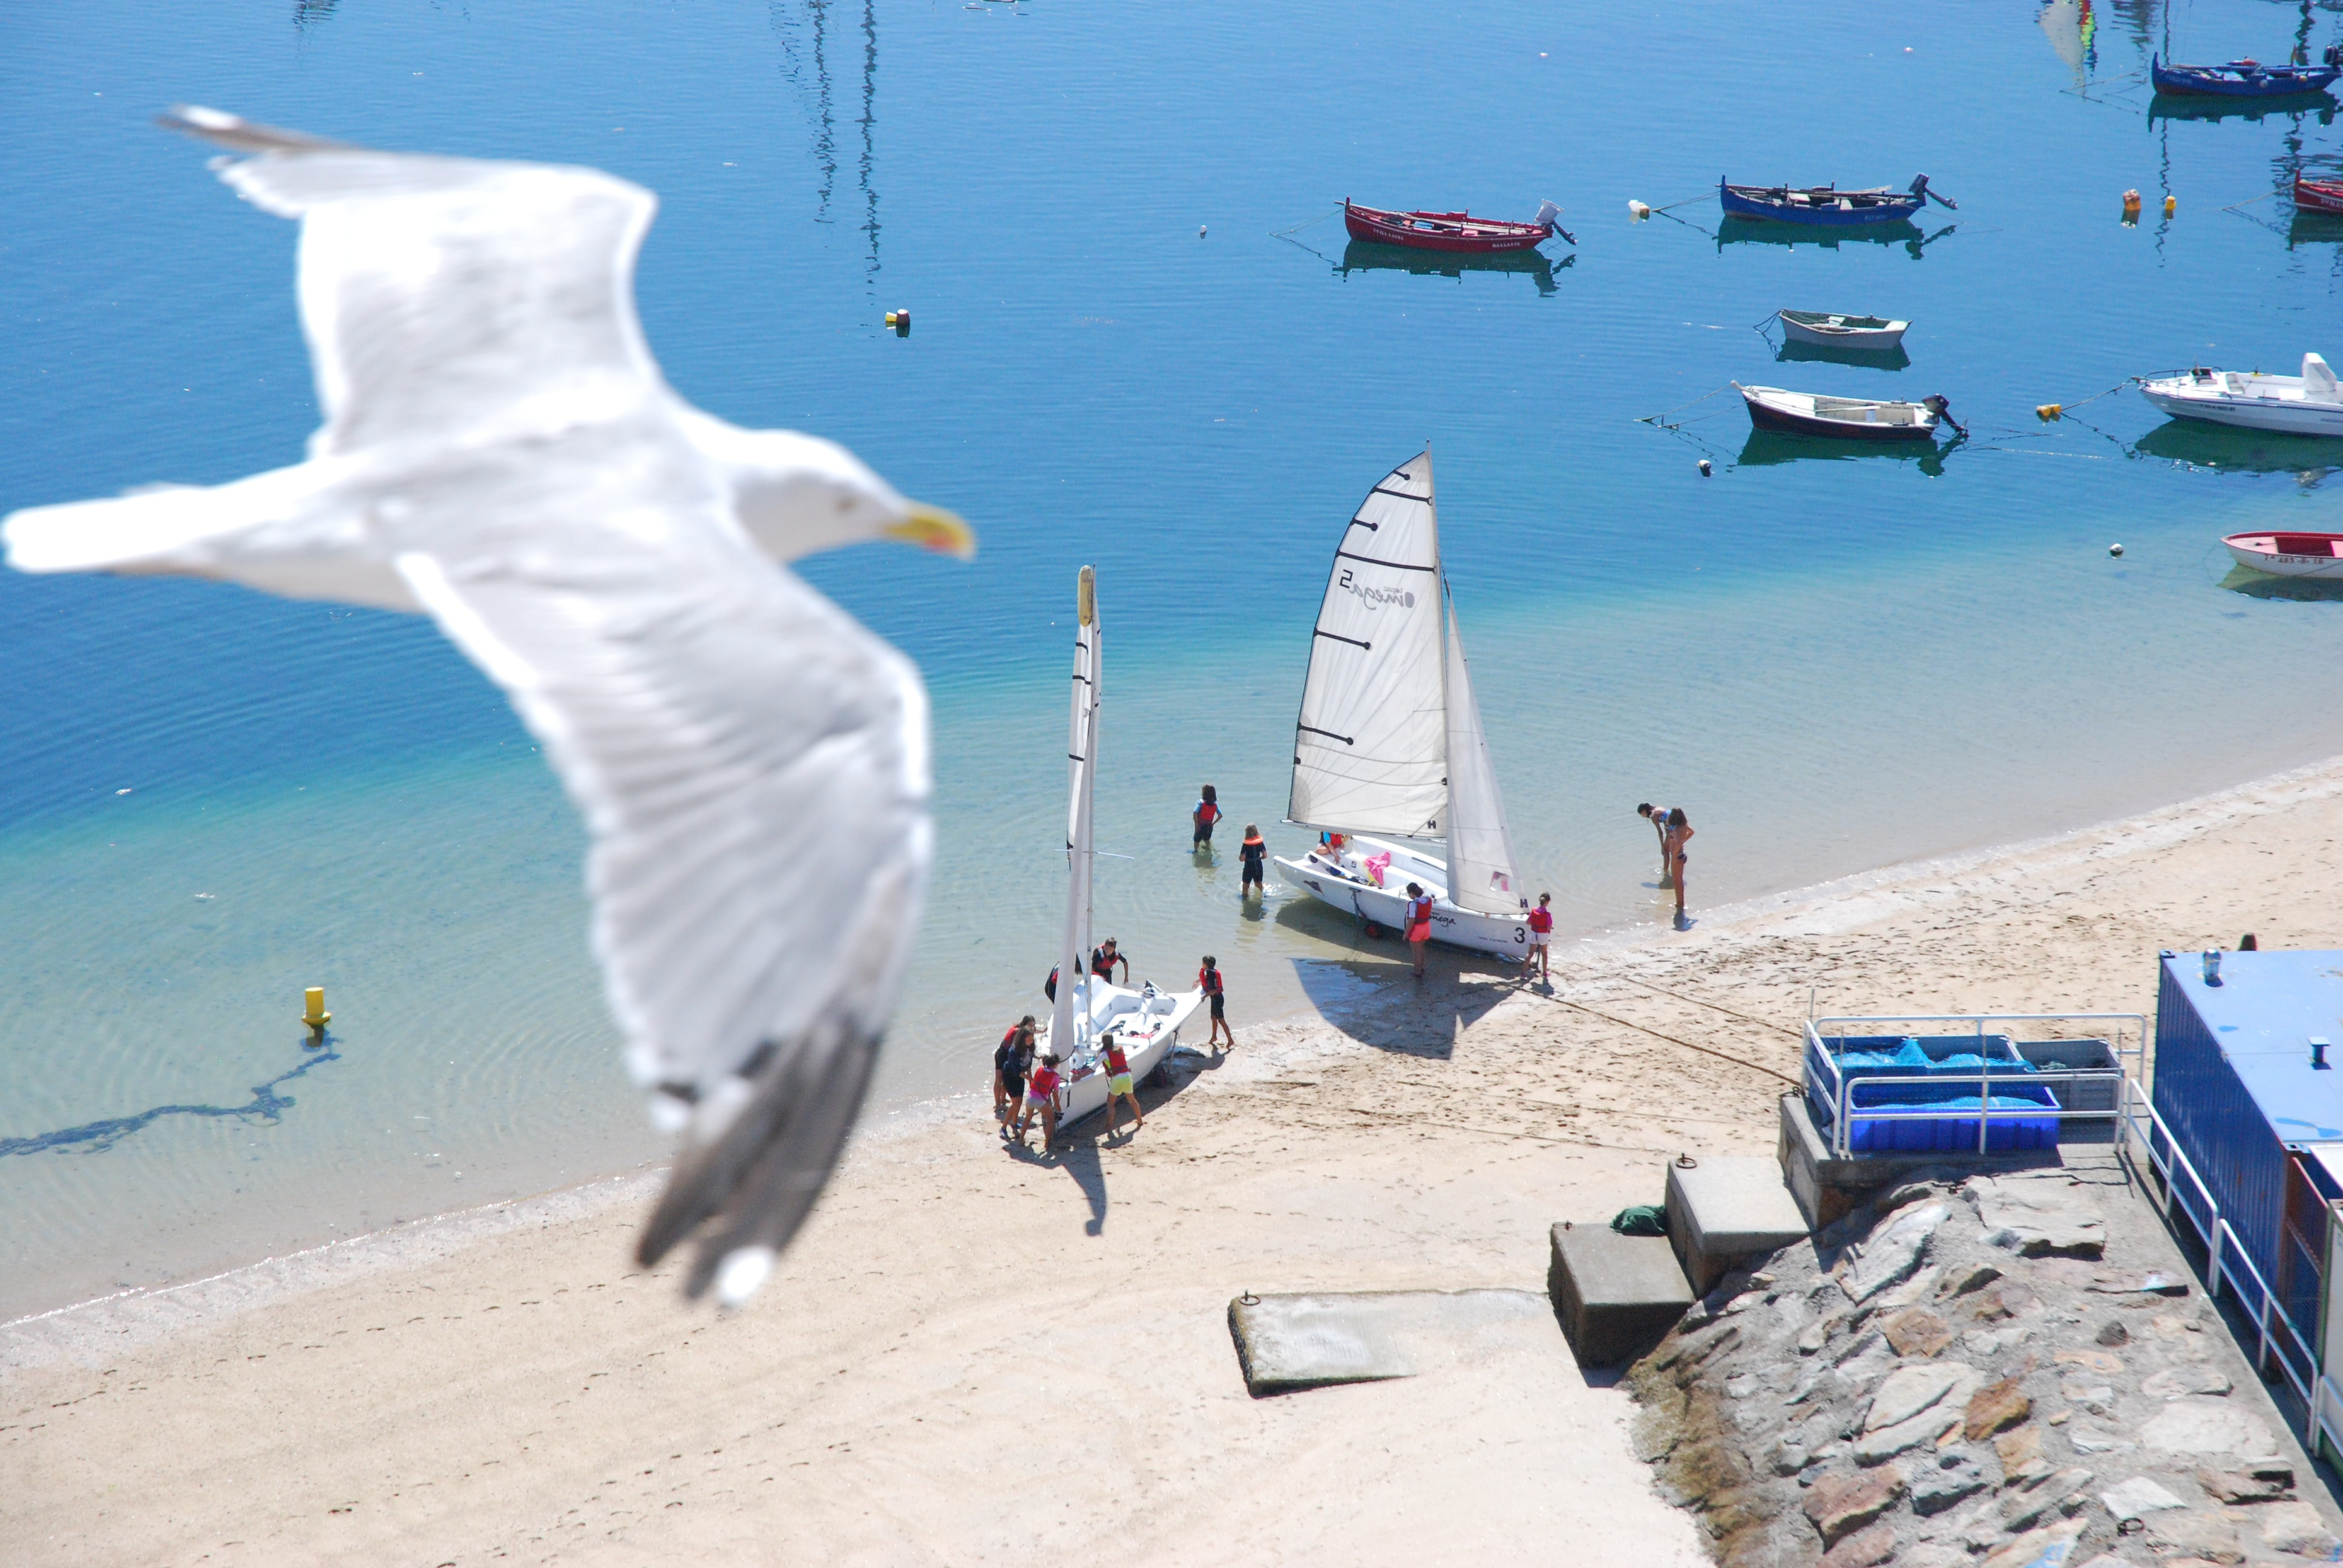 white bird flying and people standing near boat docked on seashore